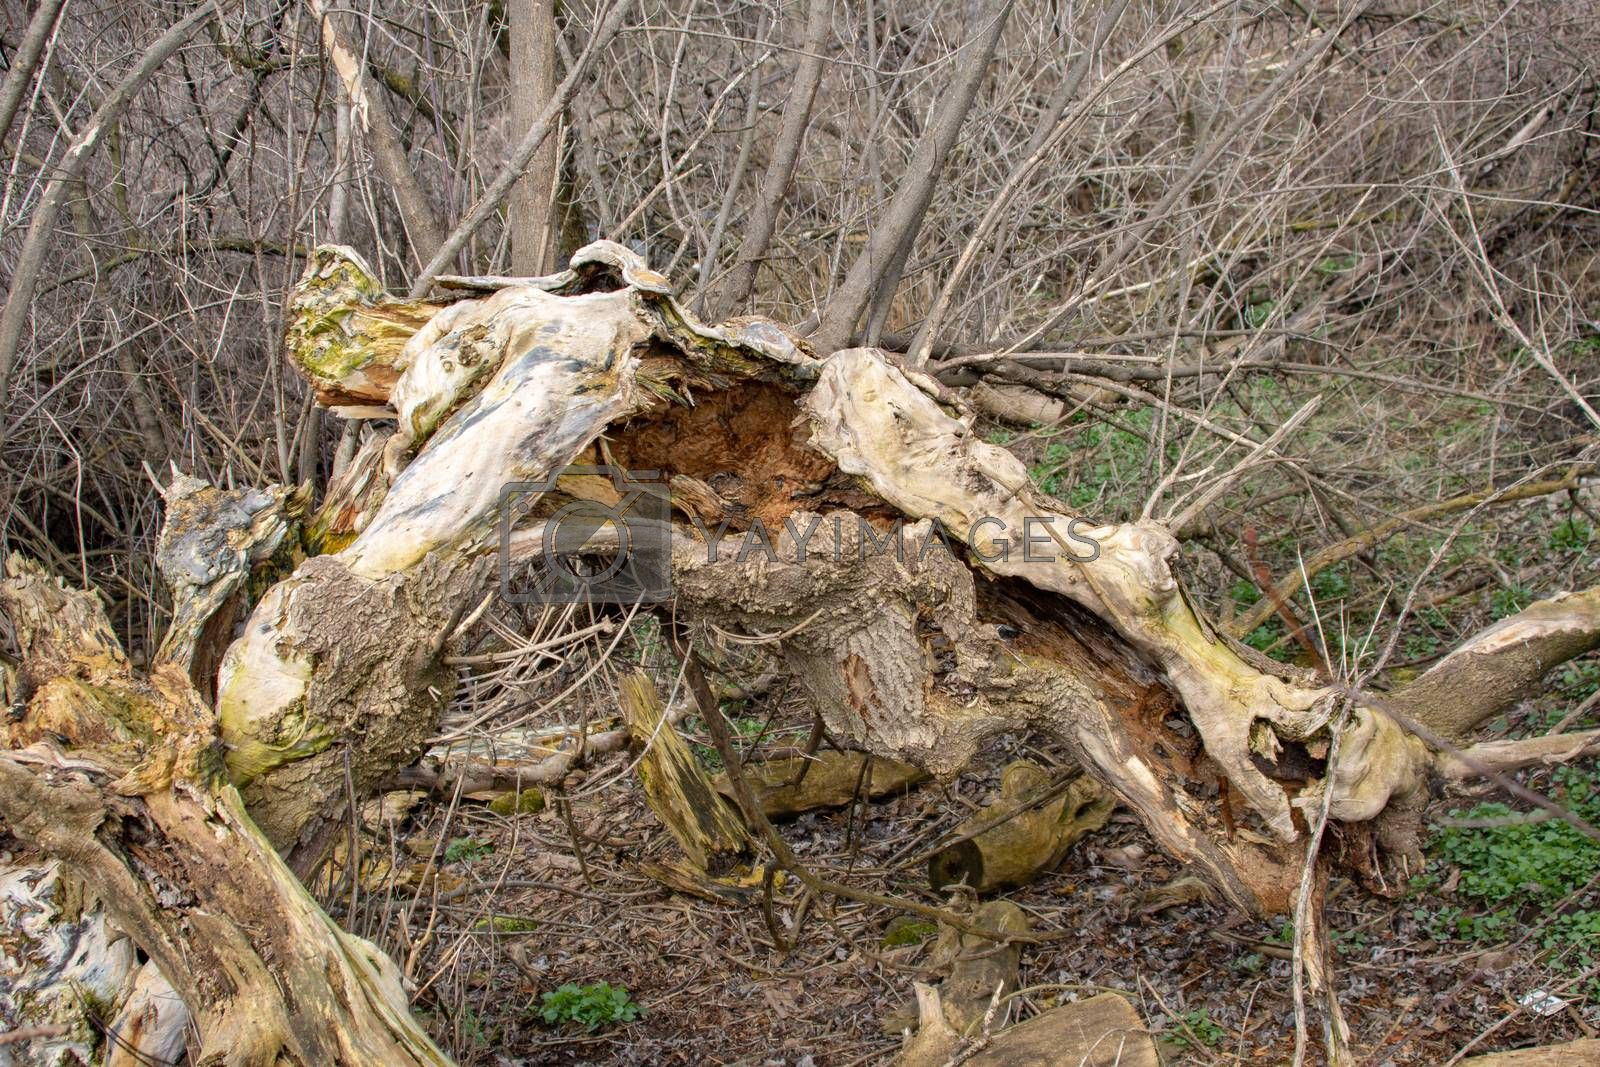 Sick trees, in the natural environment, rot or crumble into dust